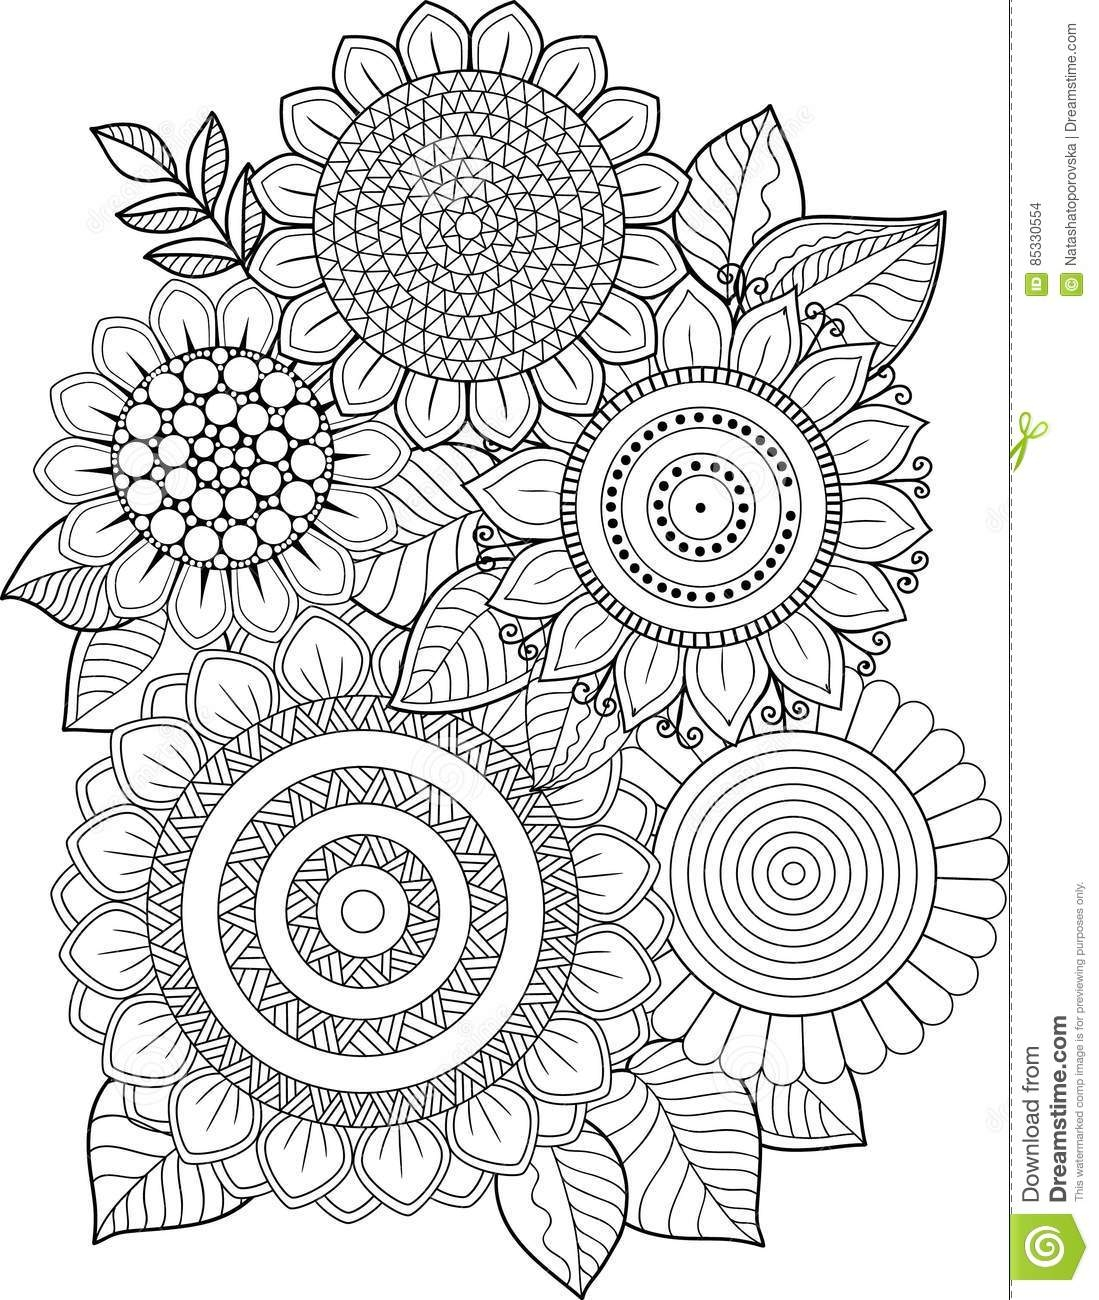 flower garden coloring pages - stock illustration black white sunflowers isolated white abstract doodle background made flowers butterfly vector coloring page summer image